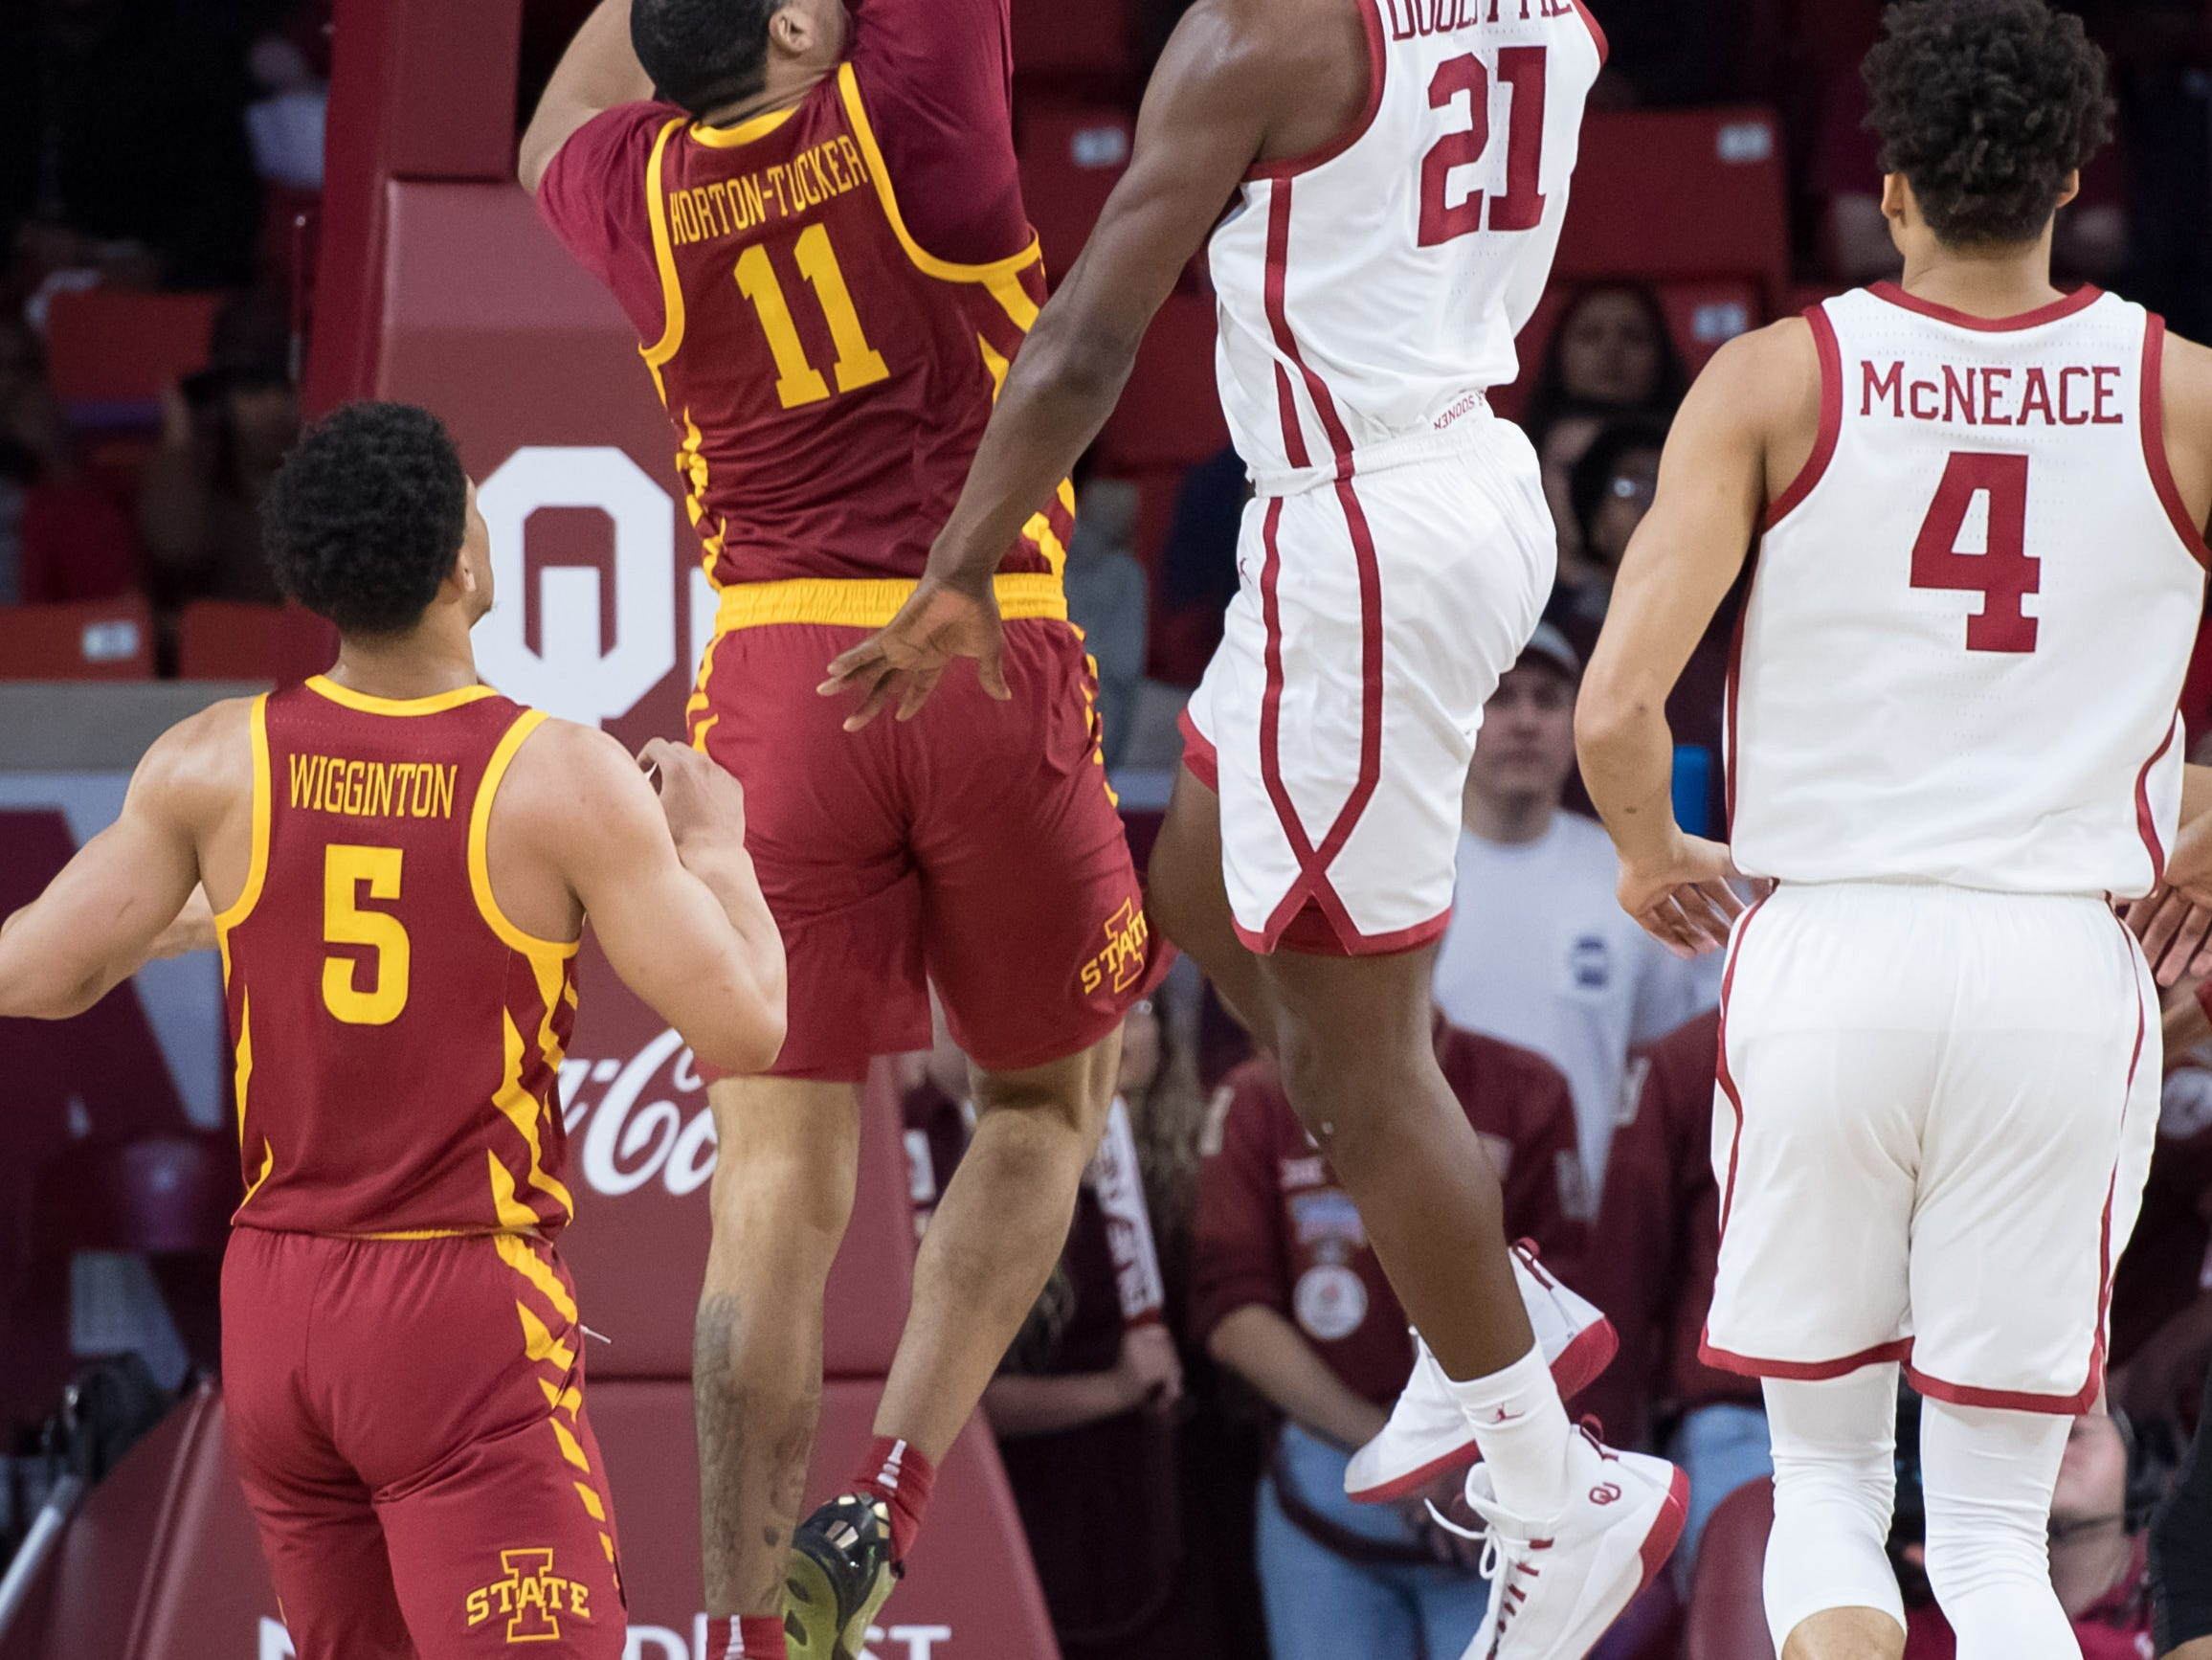 Oklahoma Sooners forward Kristian Doolittle (21) shoots the ball while defended by Iowa State Cyclones guard Talen Horton-Tucker (11) during the first half at Lloyd Noble Center.